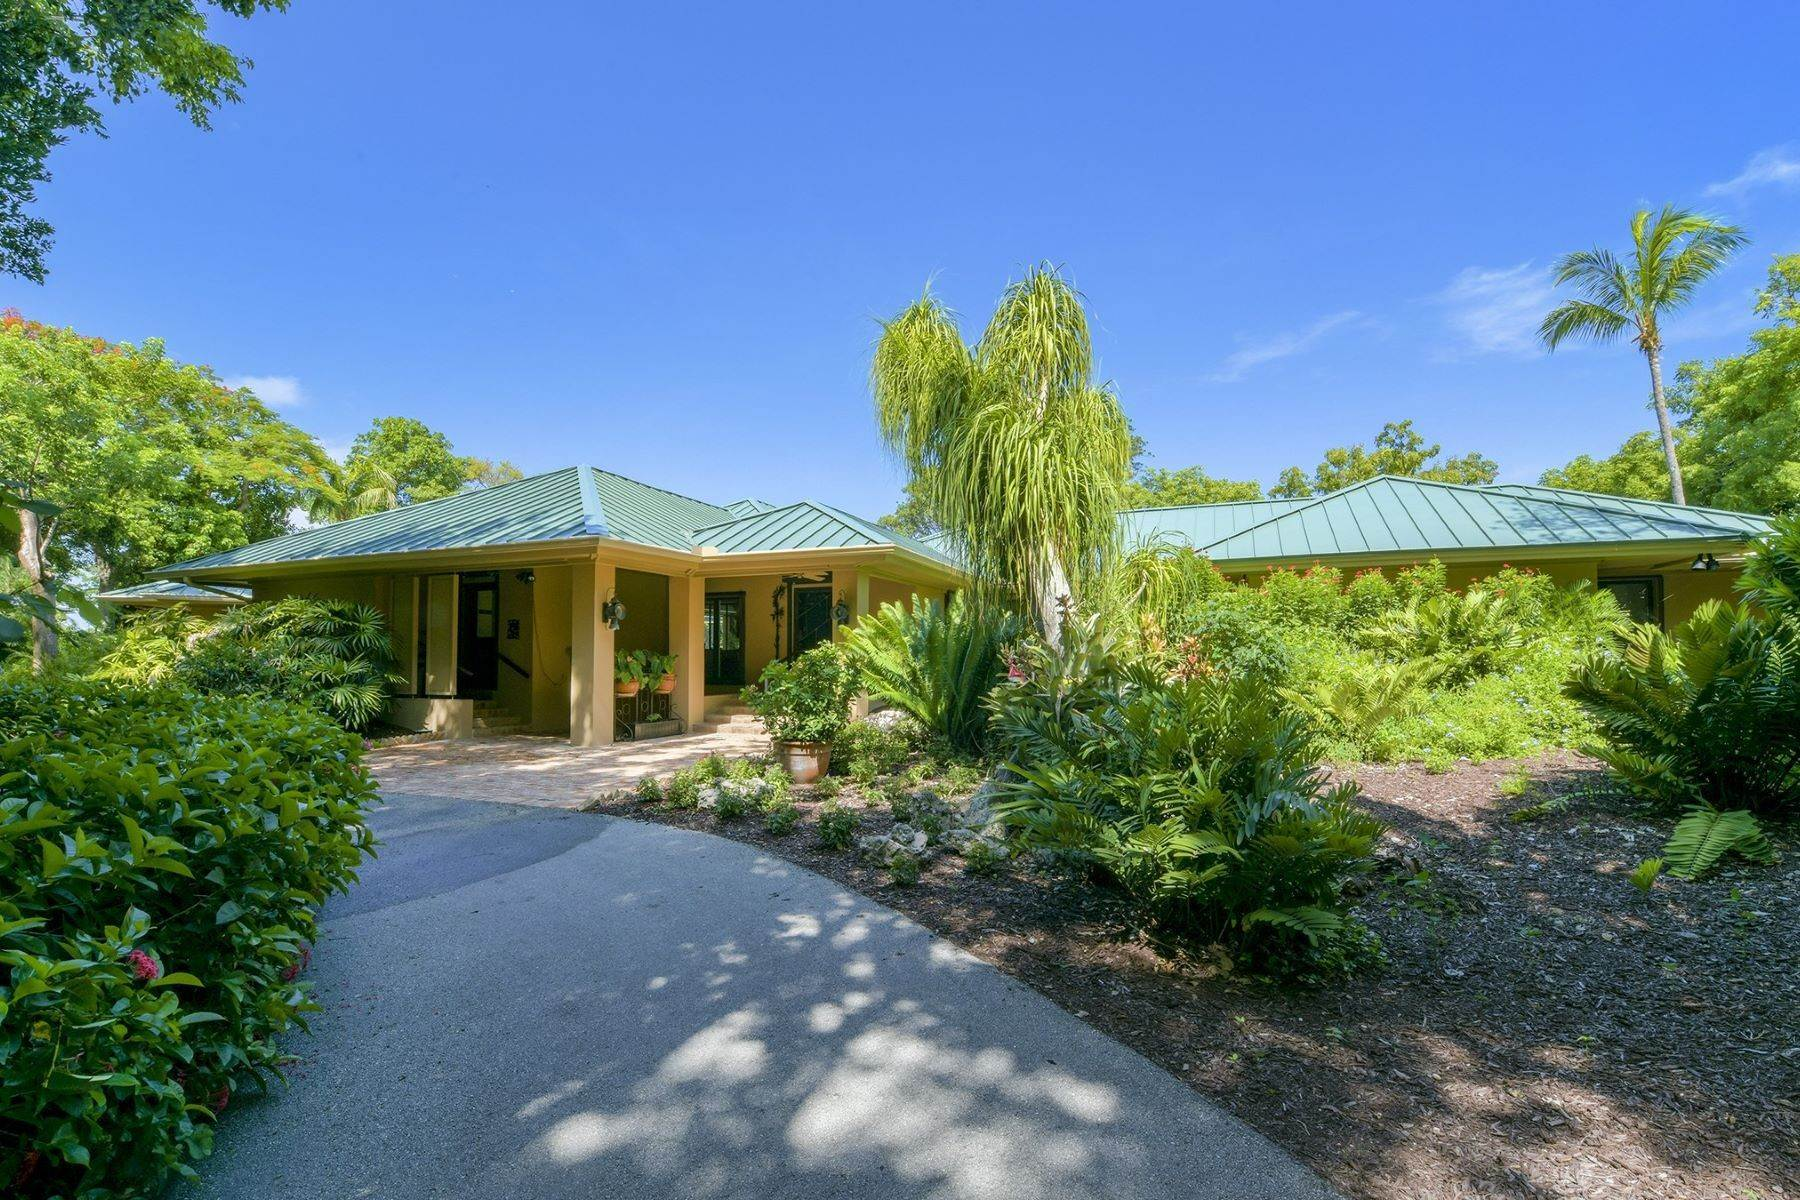 22. Property for Sale at 10 Cannon Point, Key Largo, FL 10 Cannon Point Key Largo, Florida 33037 United States